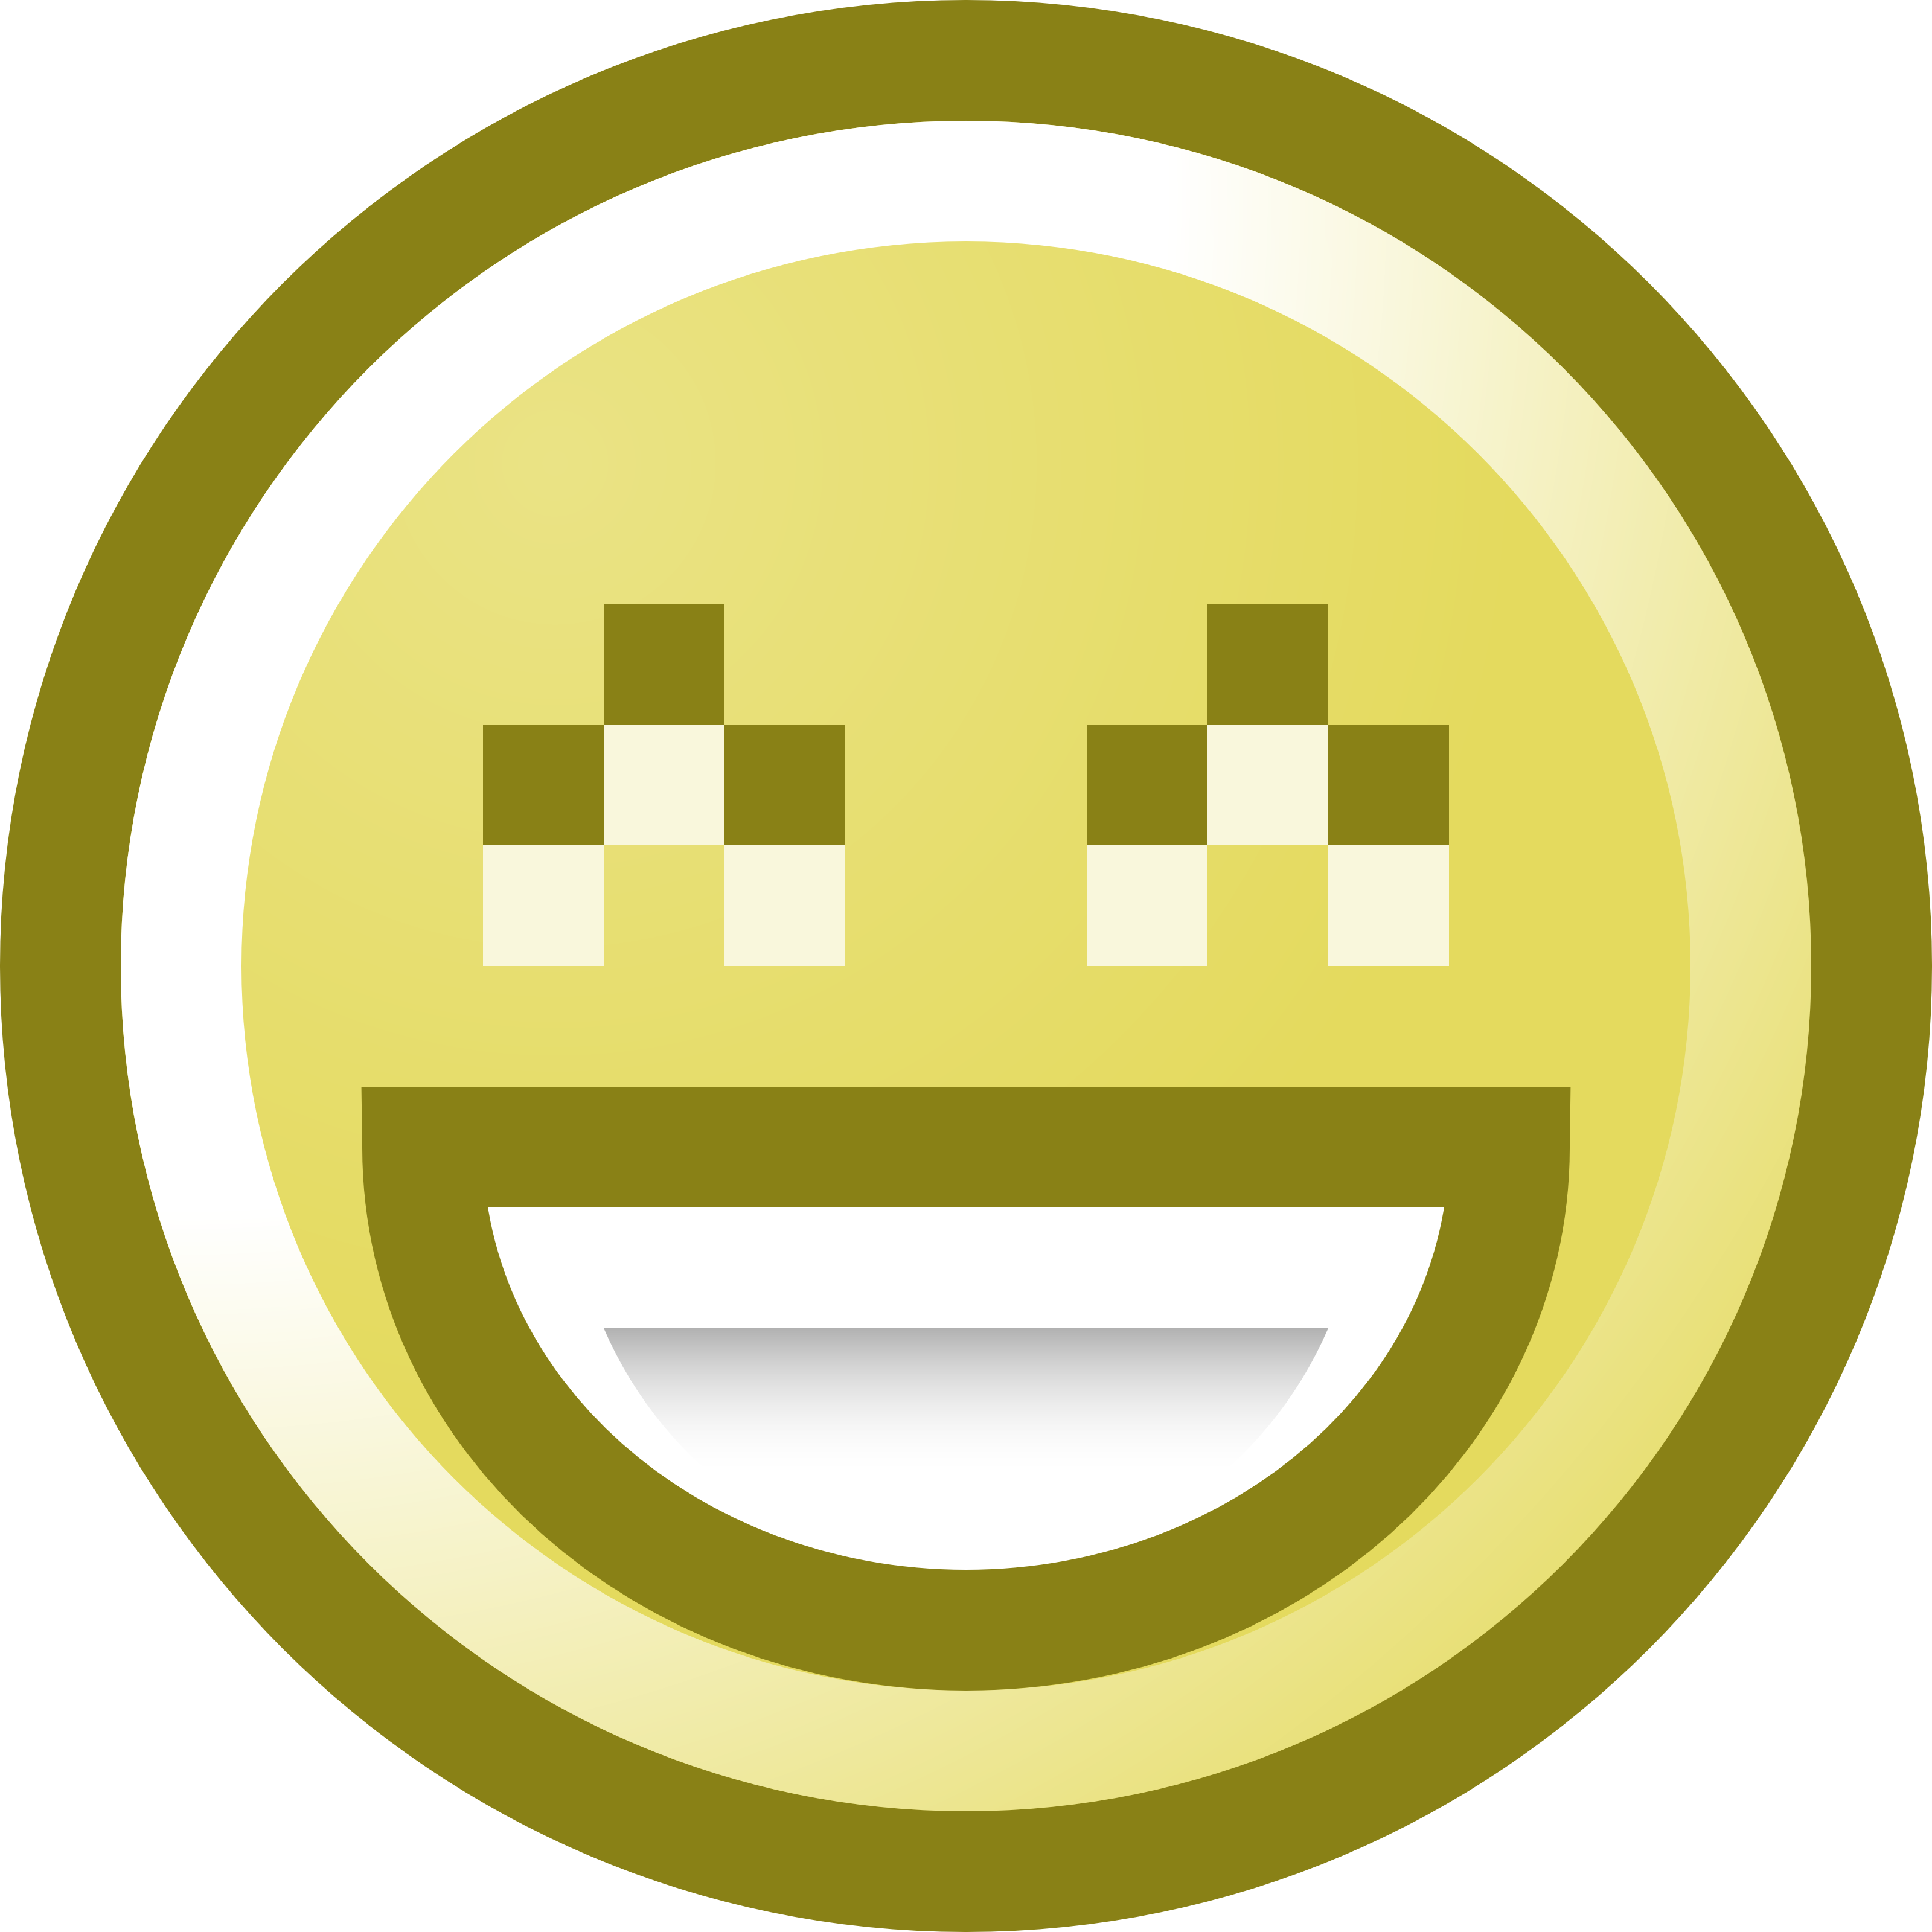 This free smiley face was rendered to portray a smiling person.